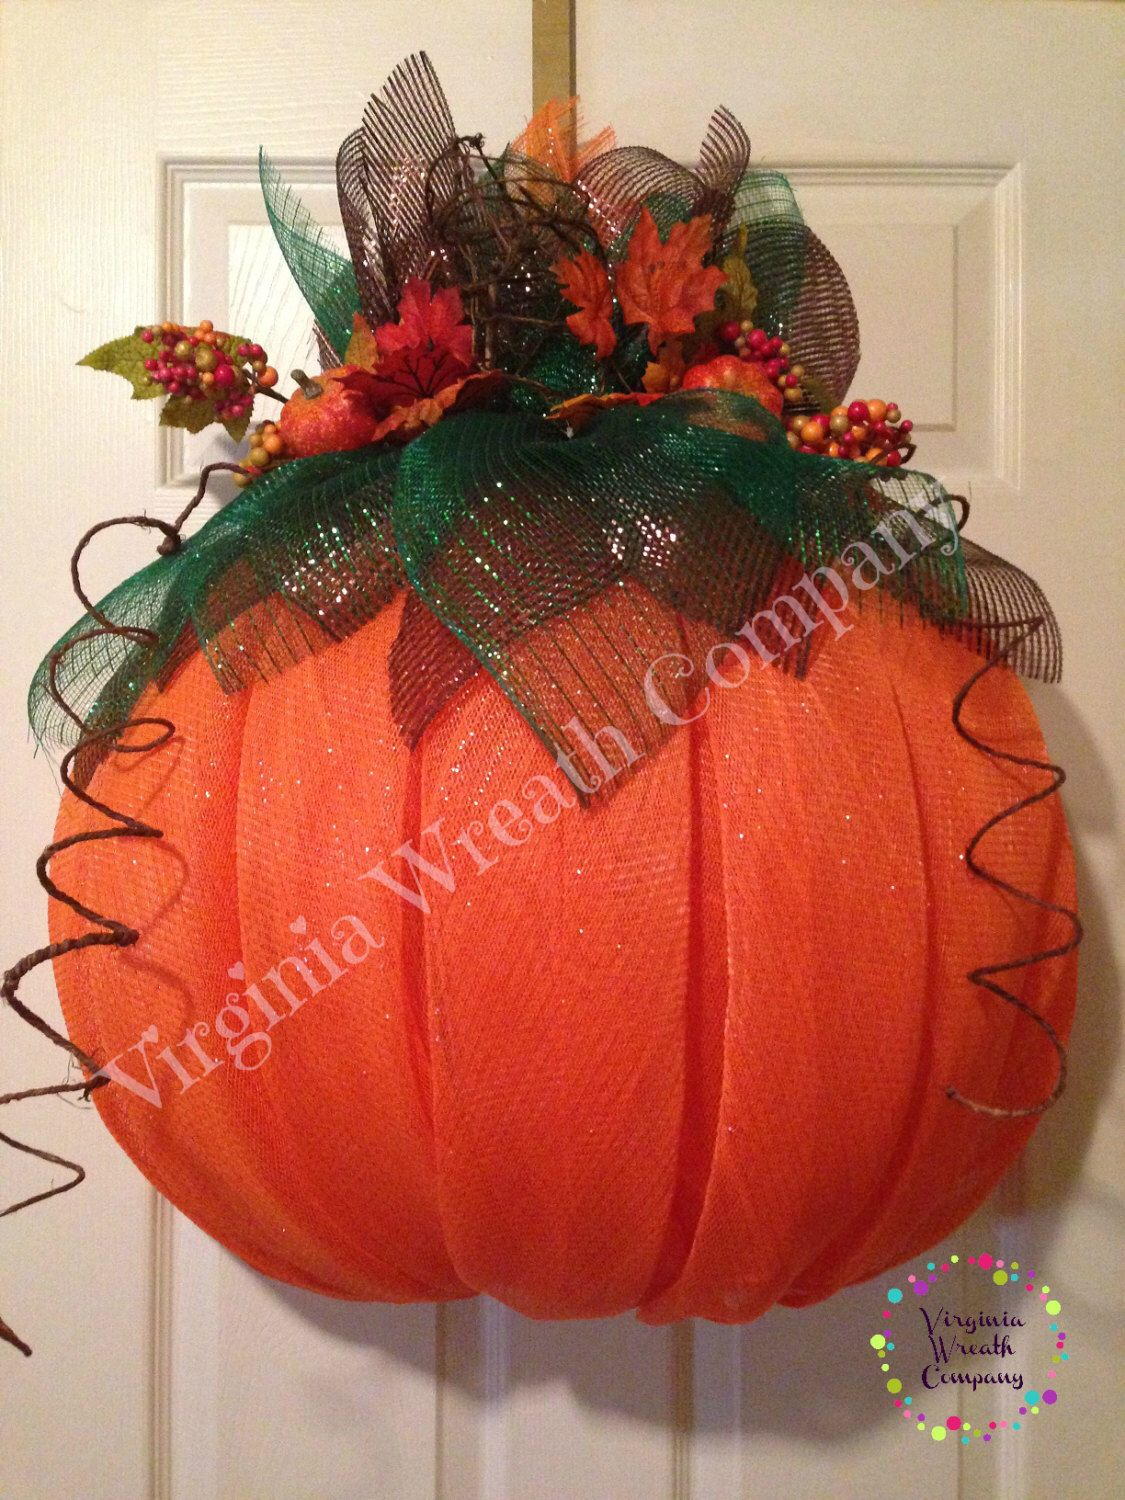 This pumpkin is made using a pumpkin wreath wire form from